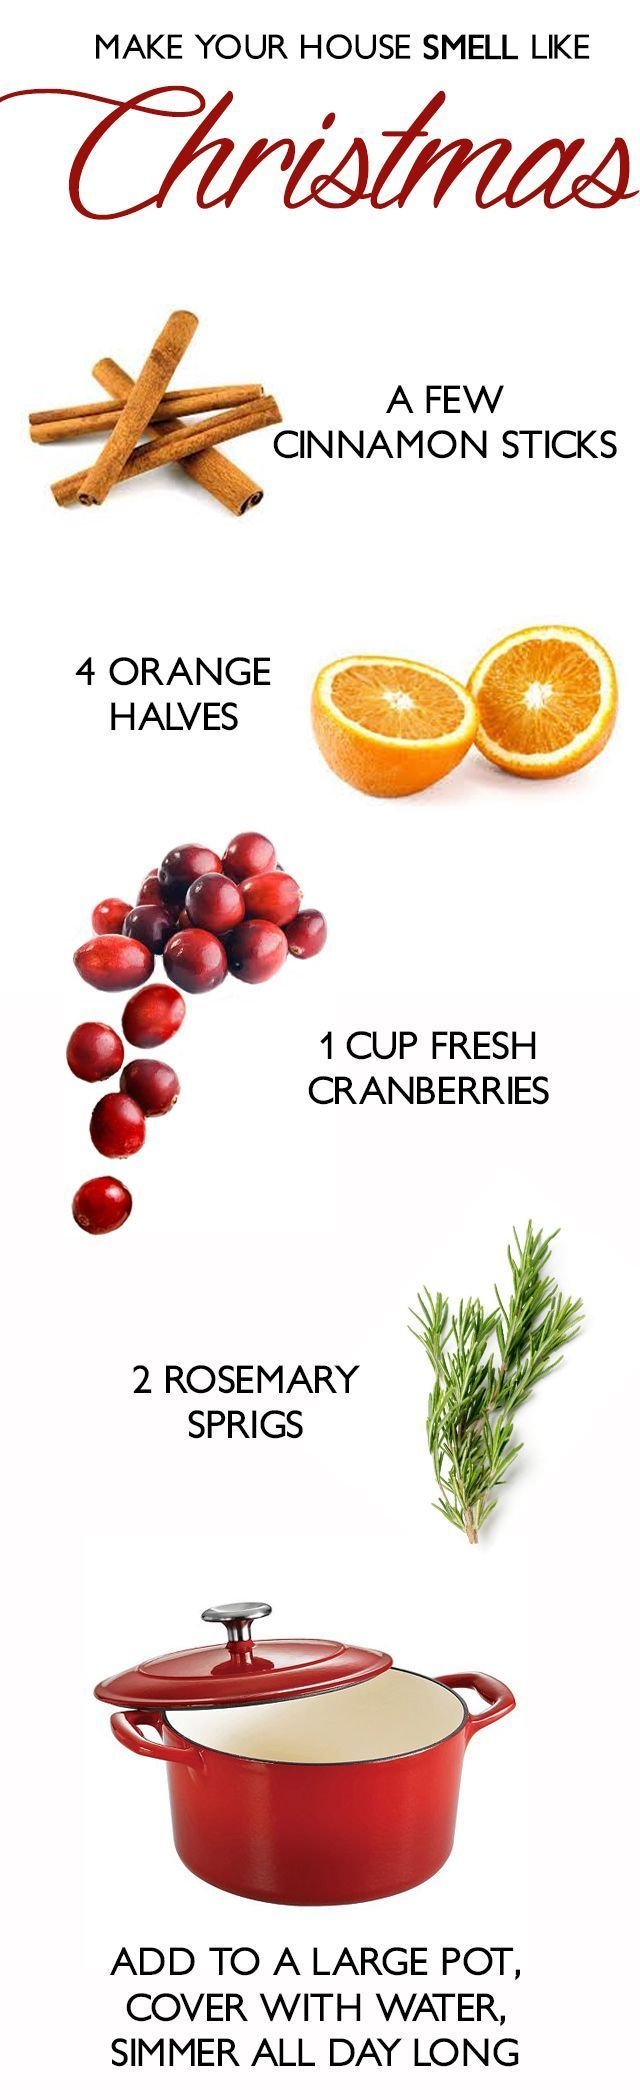 How To Make Your House Smell Like CHRISTMAS! ~ Just add cinnamon sticks, fresh oranges, cranberries, and rosemary, cover with water, and simmer on the stove all day for a natural holiday scent.